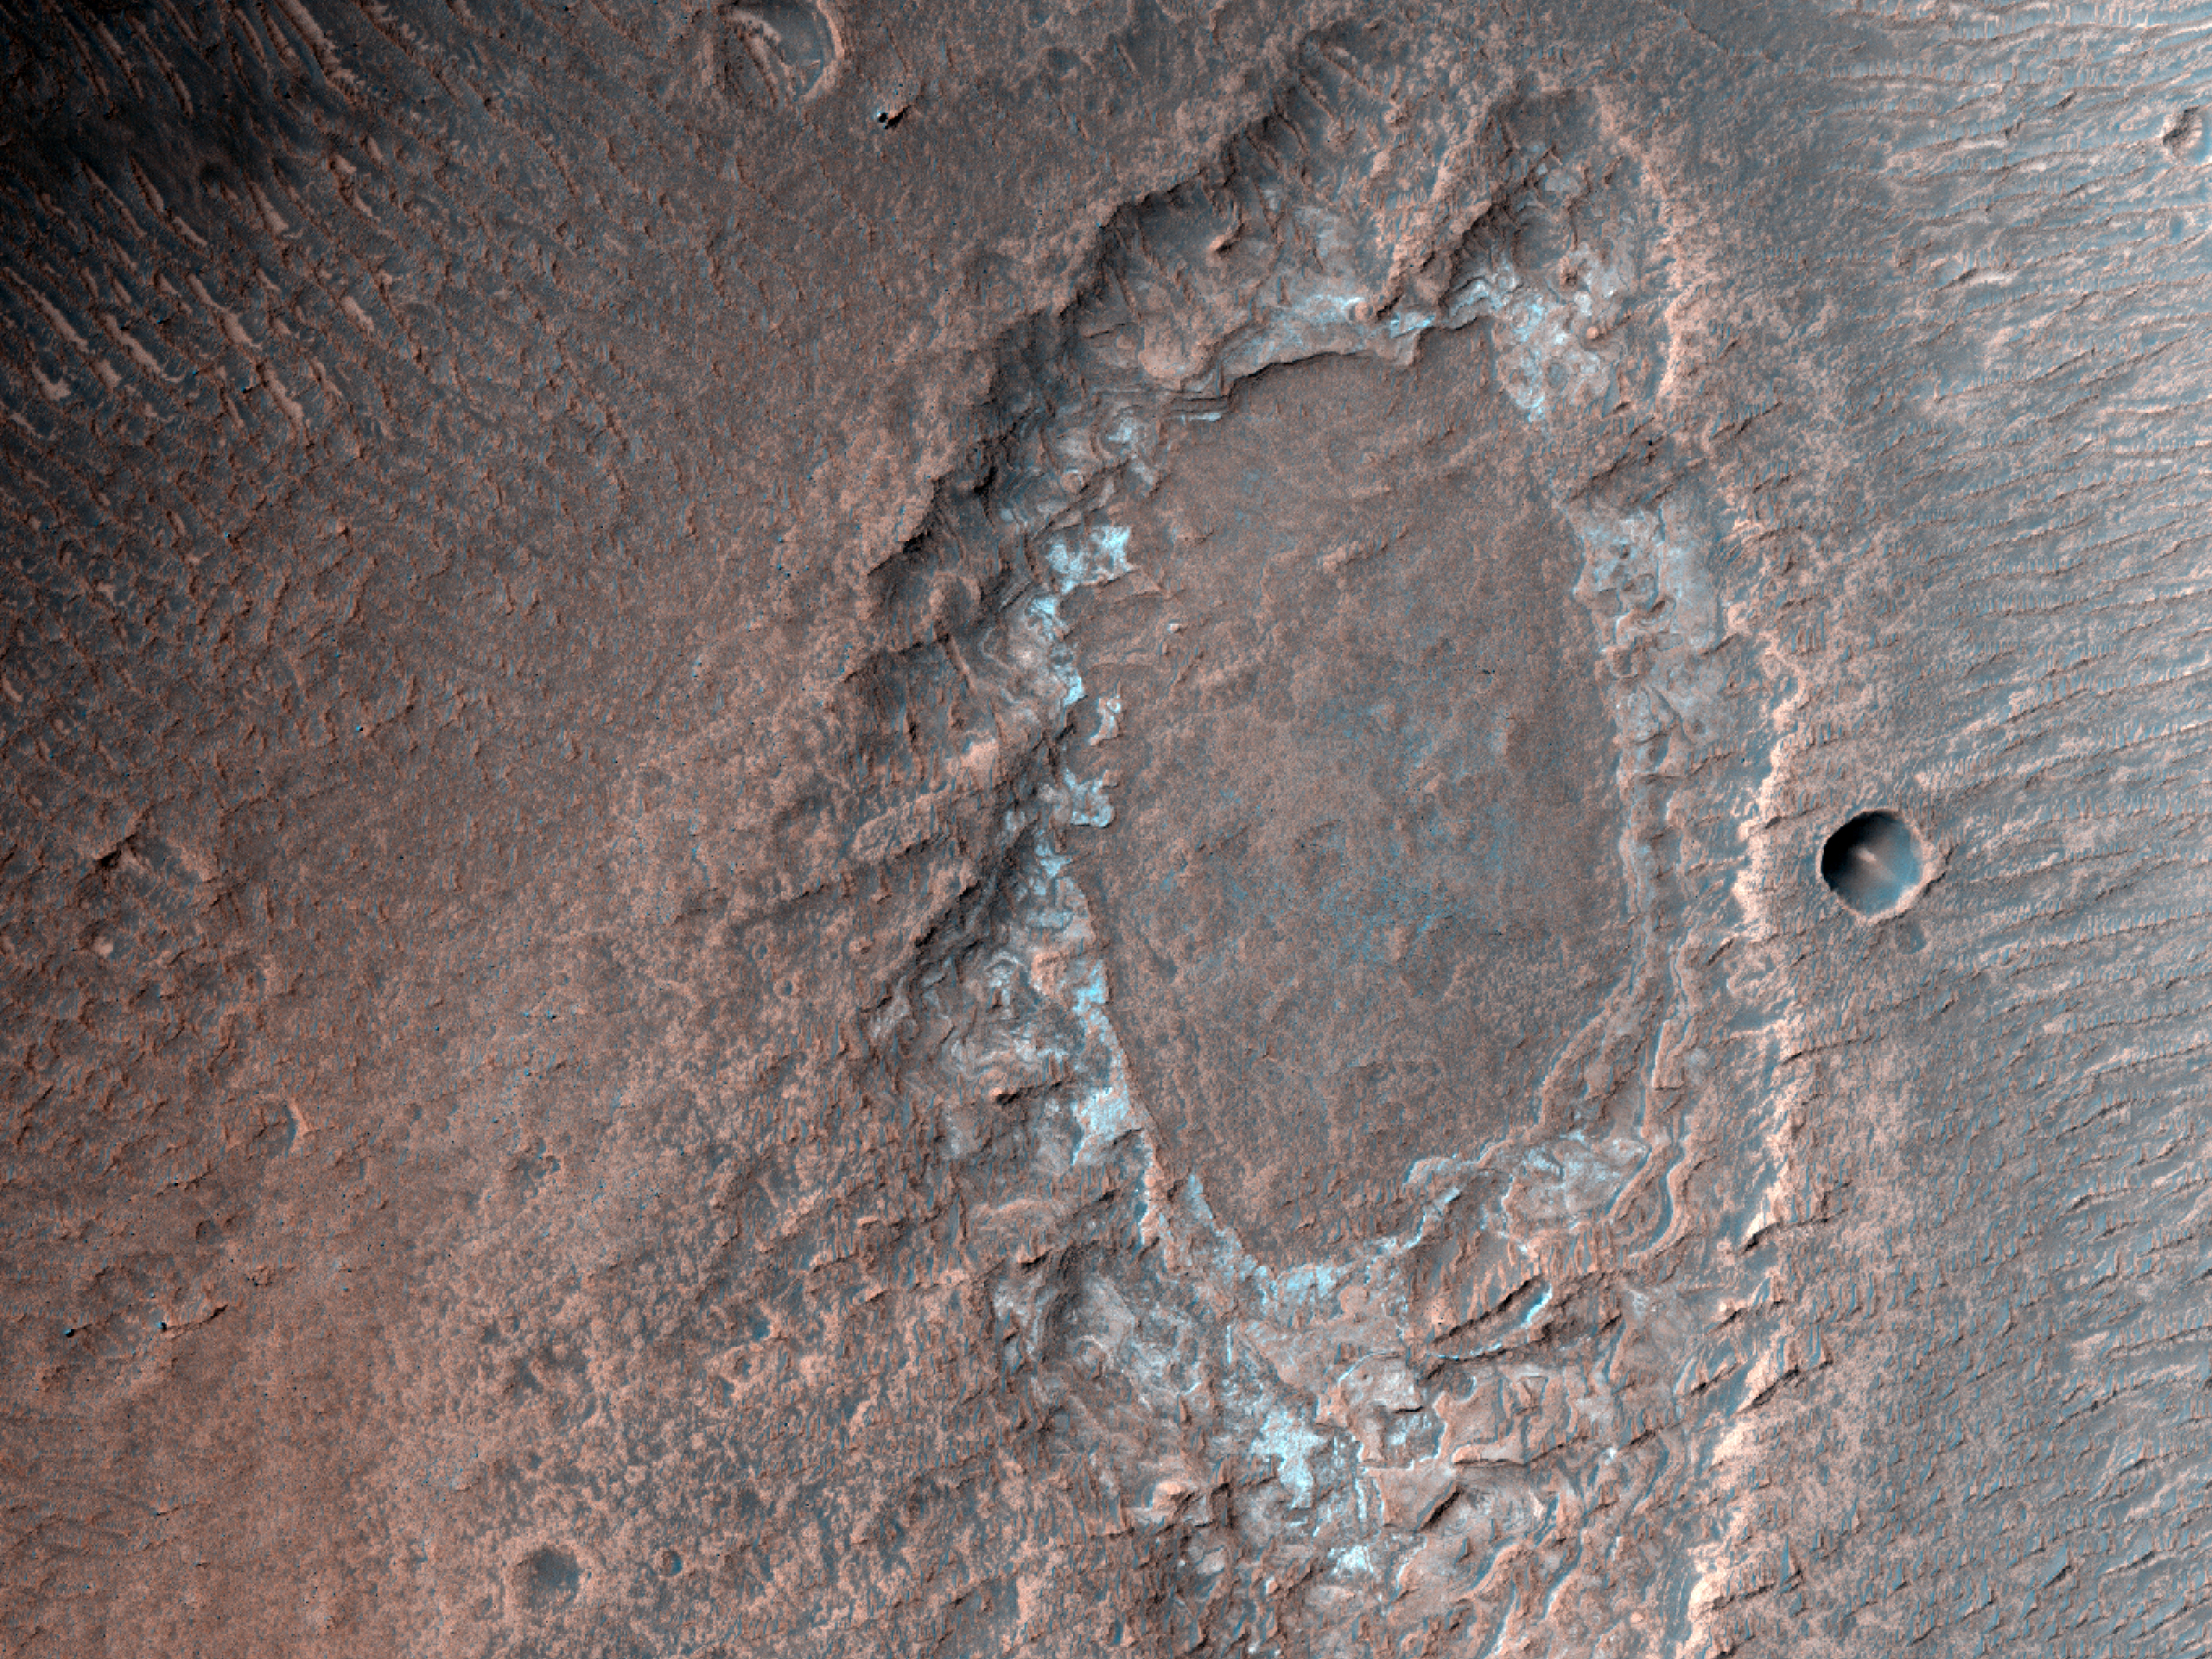 A Depression among Chaos in Juventae Chasma